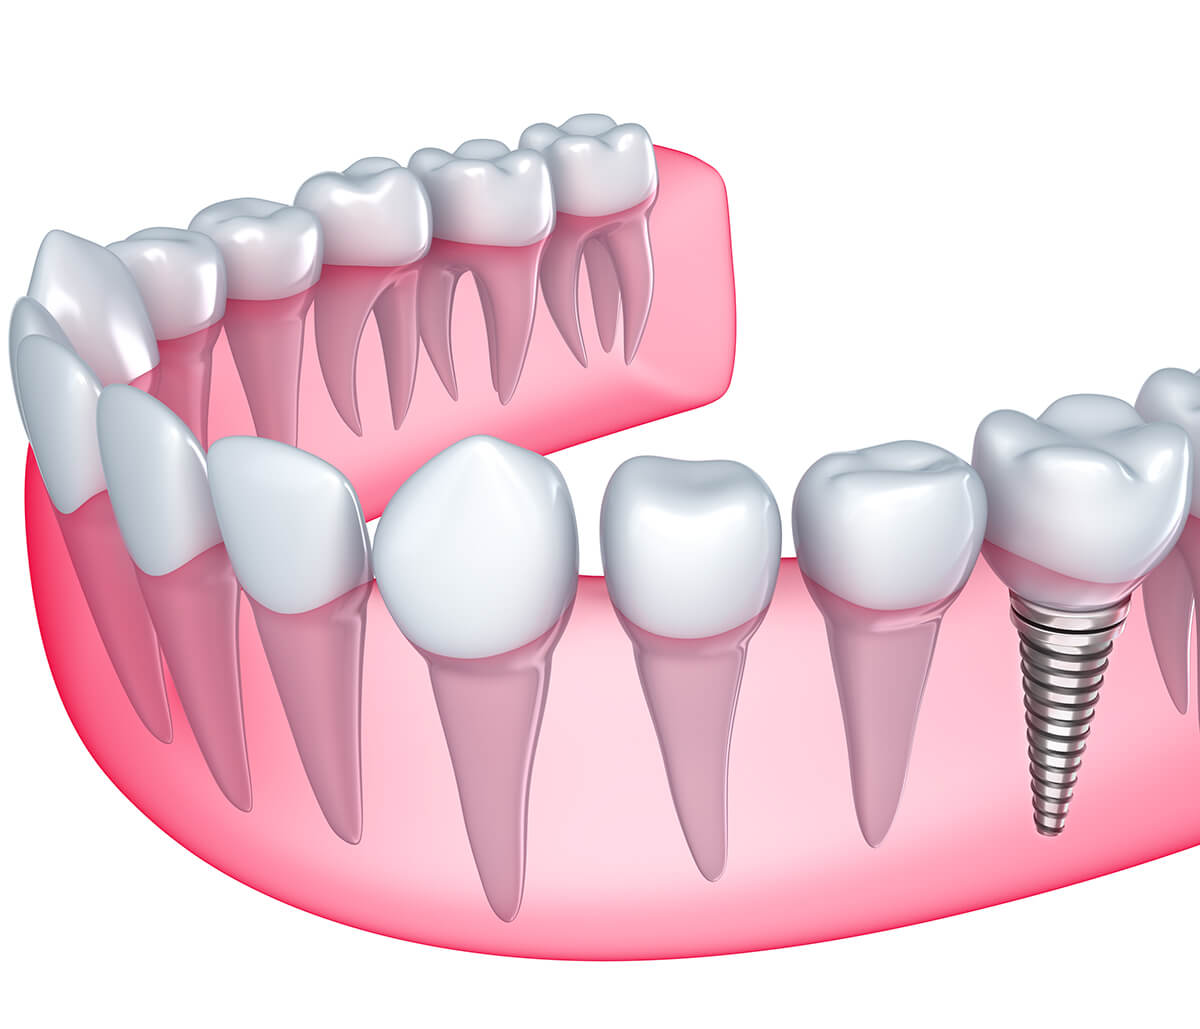 Tooth Implant Procedure at K&E Advanced Dentistry in Franklin Area